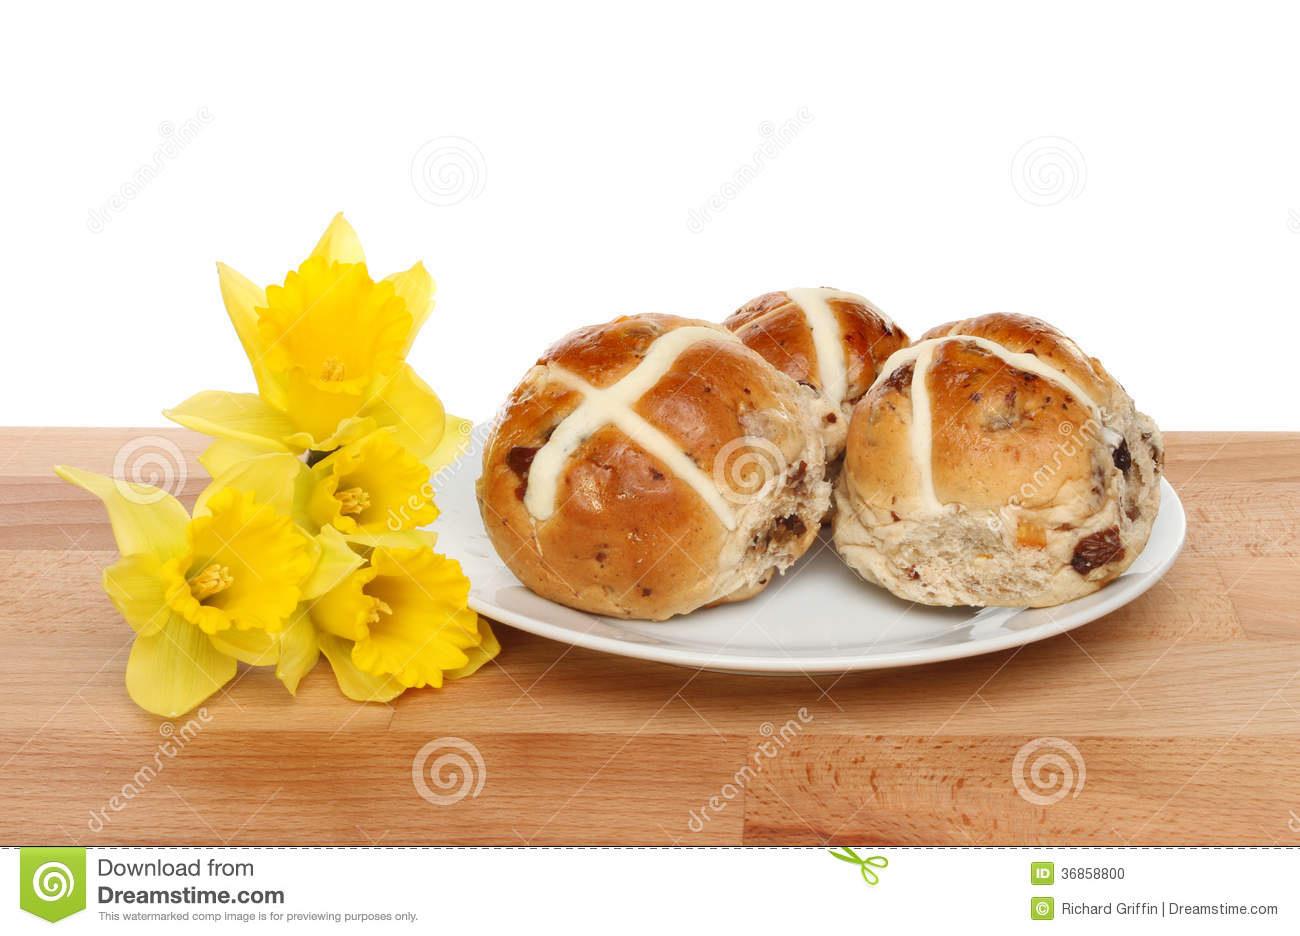 Hot cross buns and daffodils on a wooden table against a white ...